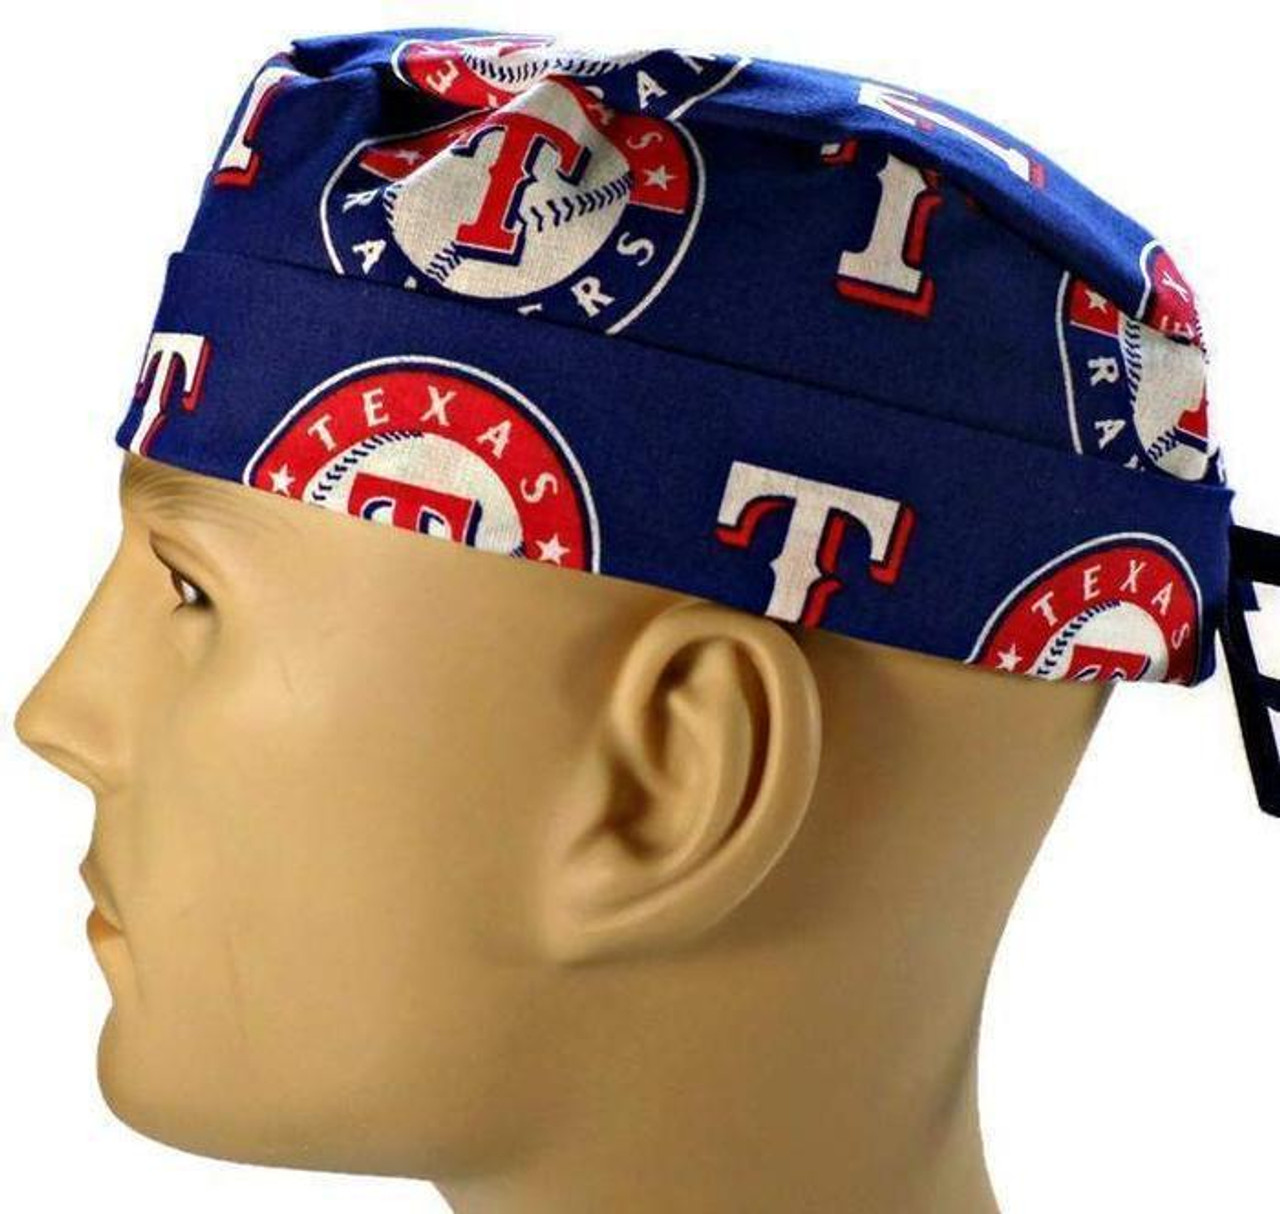 6554afc9c ... aliexpress mens adjustable fold up cuffed or uncuffed surgical scrub  hat cap made with texas rangers